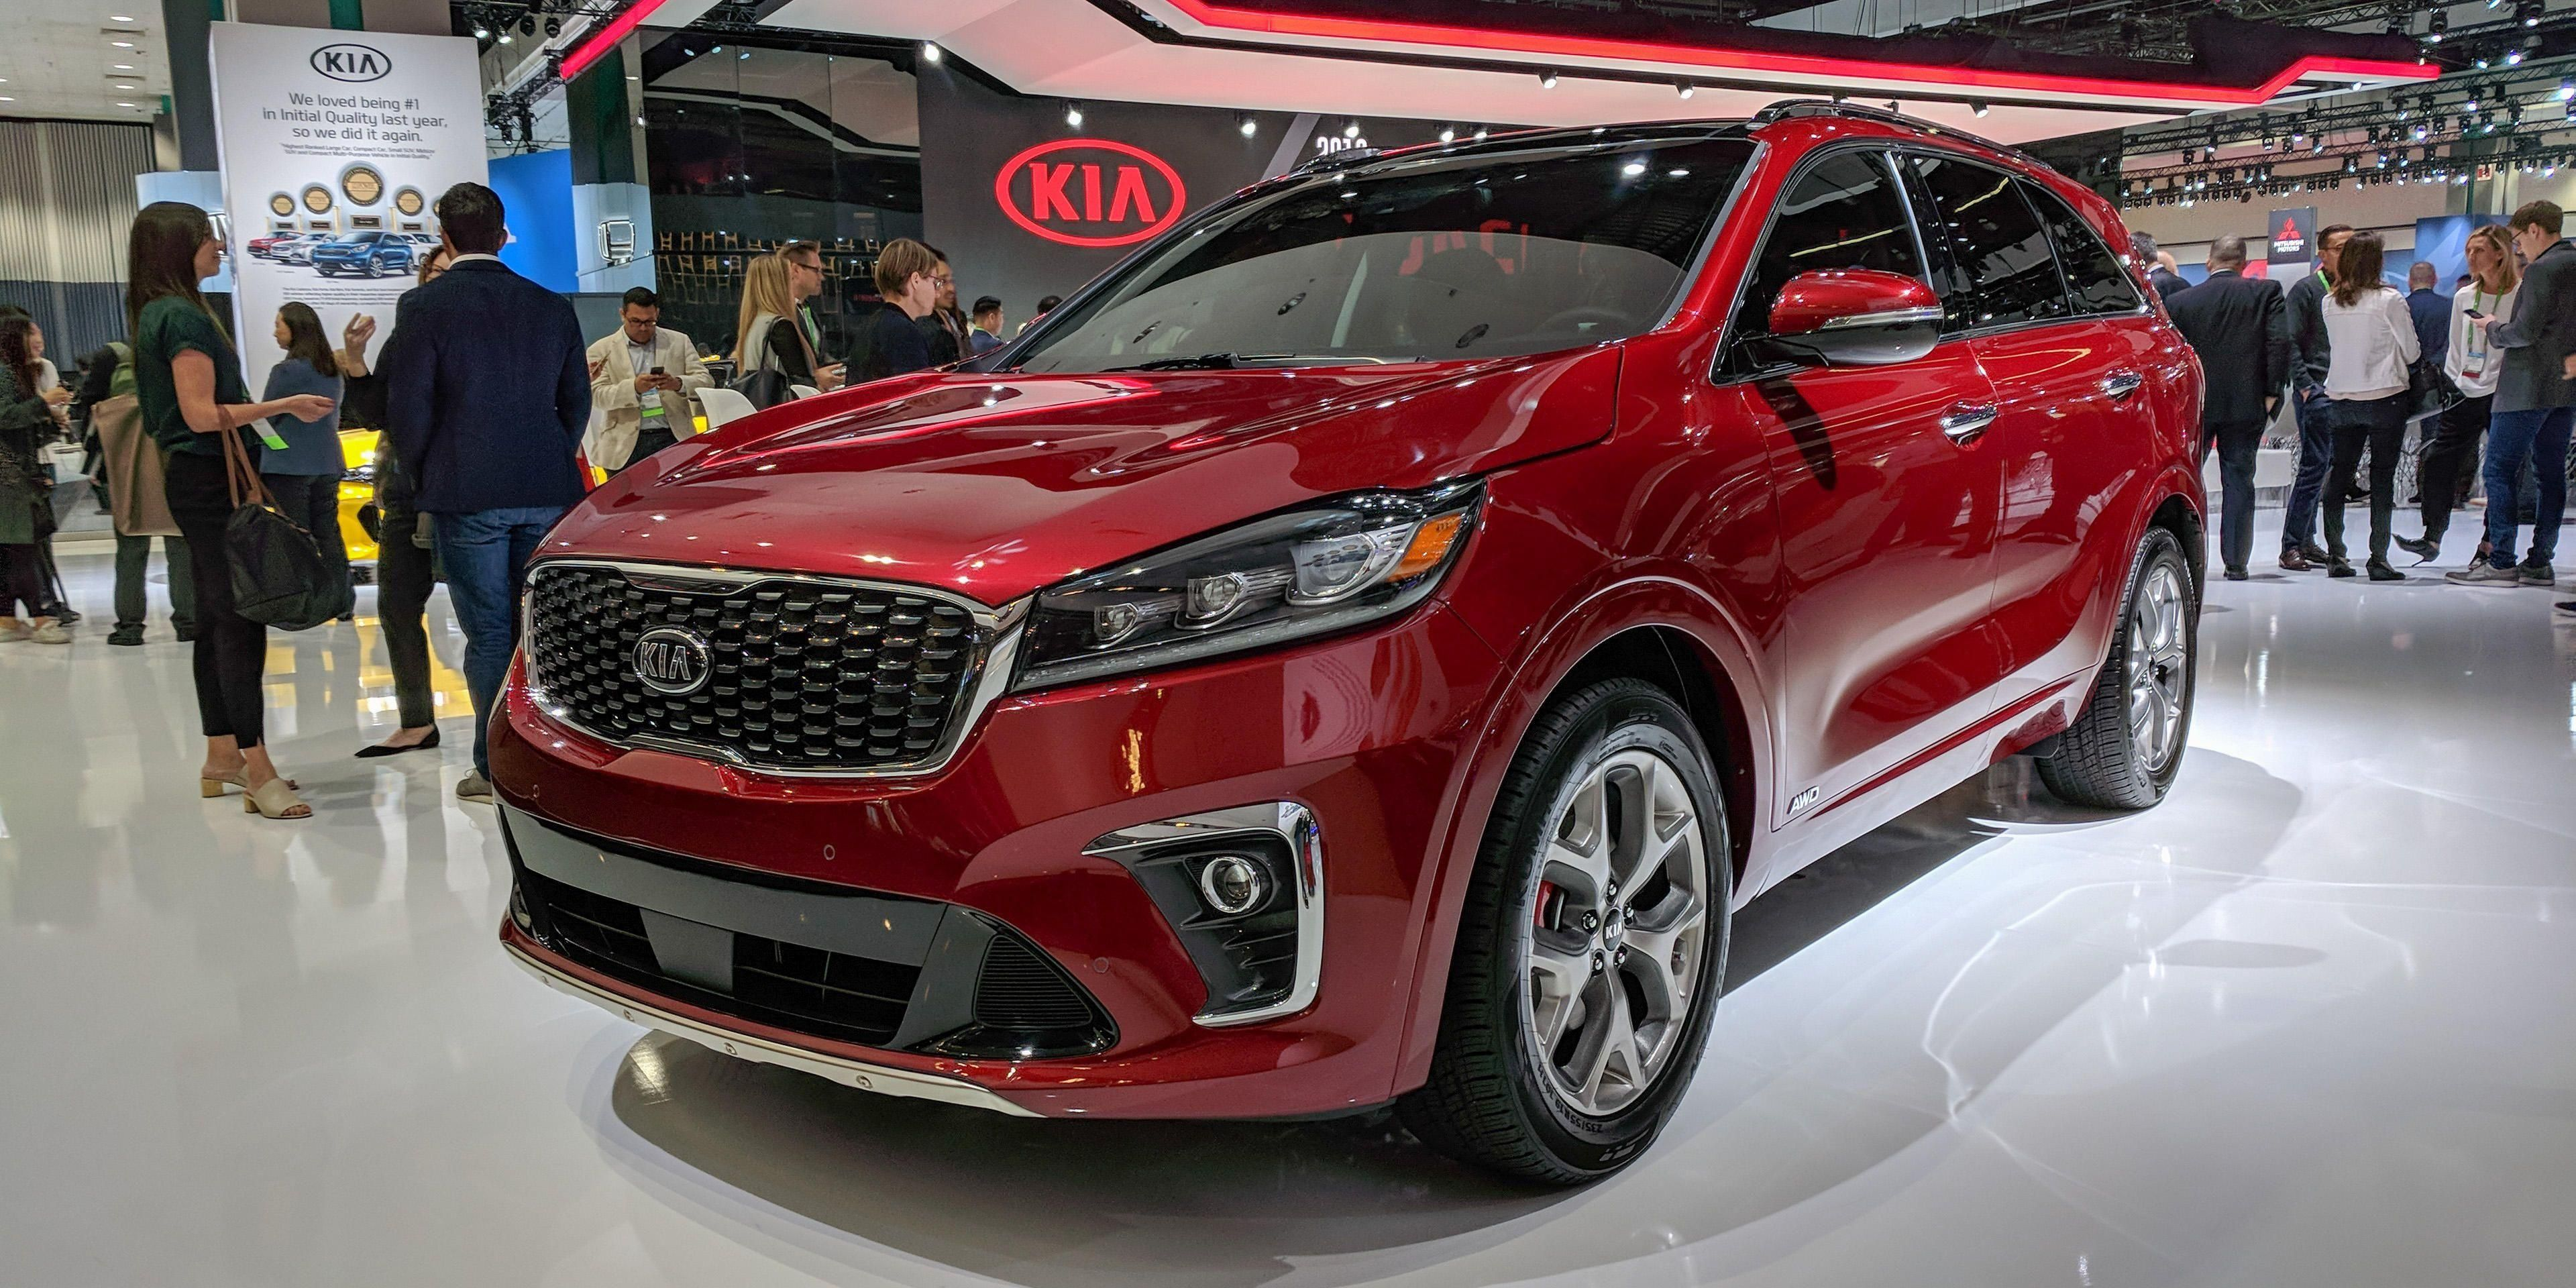 2019 Kia Sorento Release Date Price And Specs Roadshow With